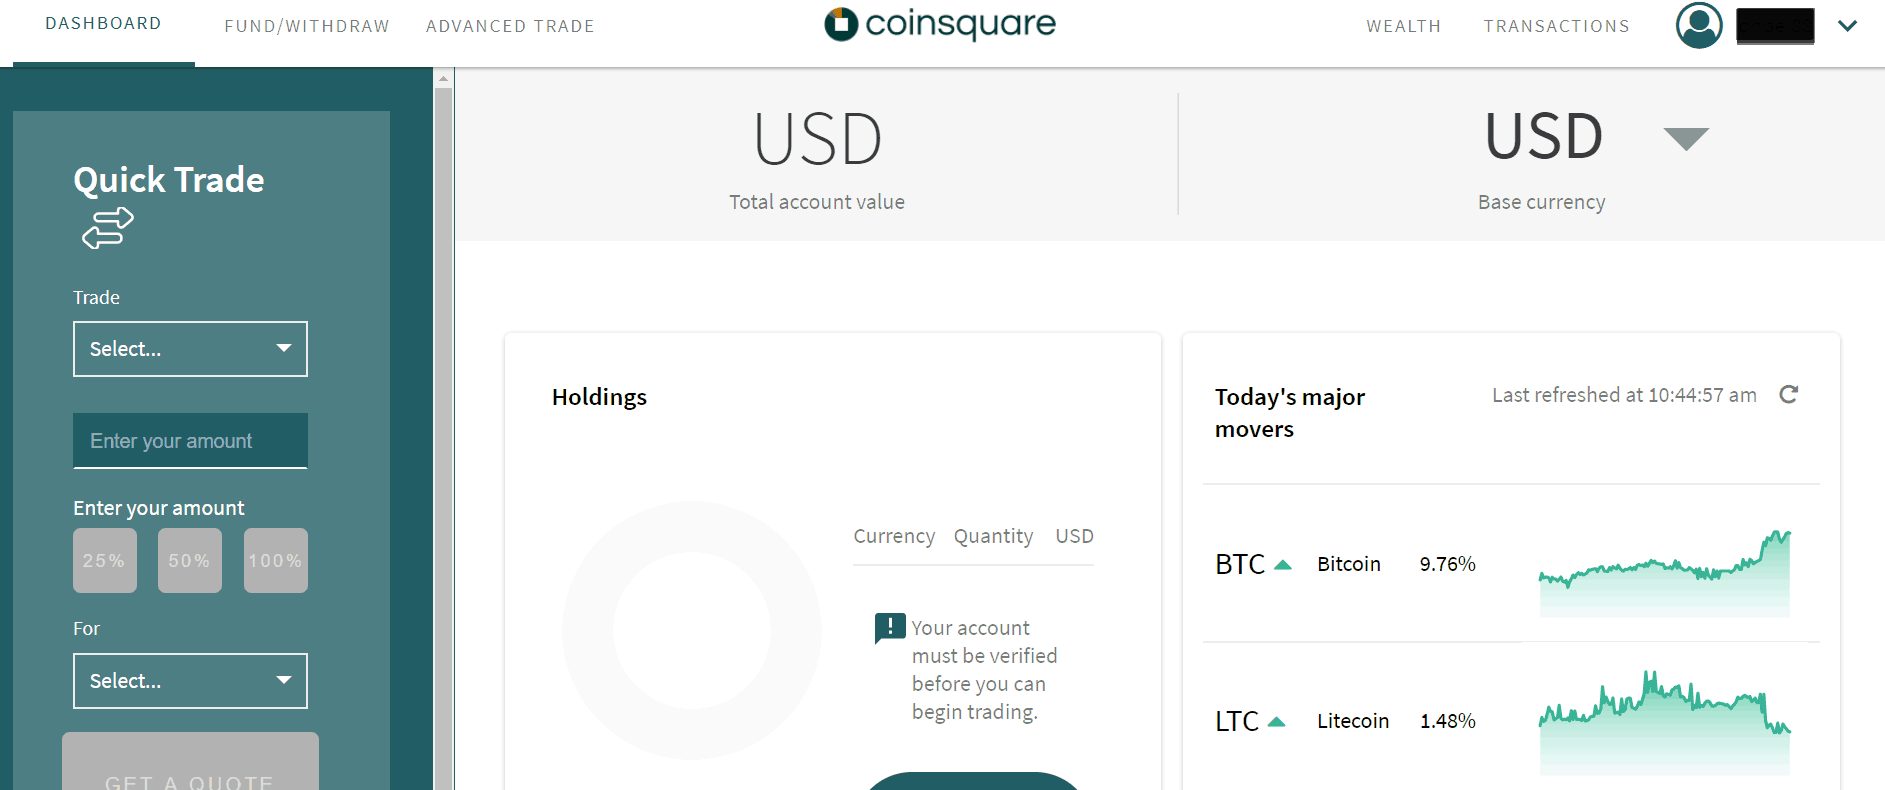 Coinsquare review - Coinsquare interface